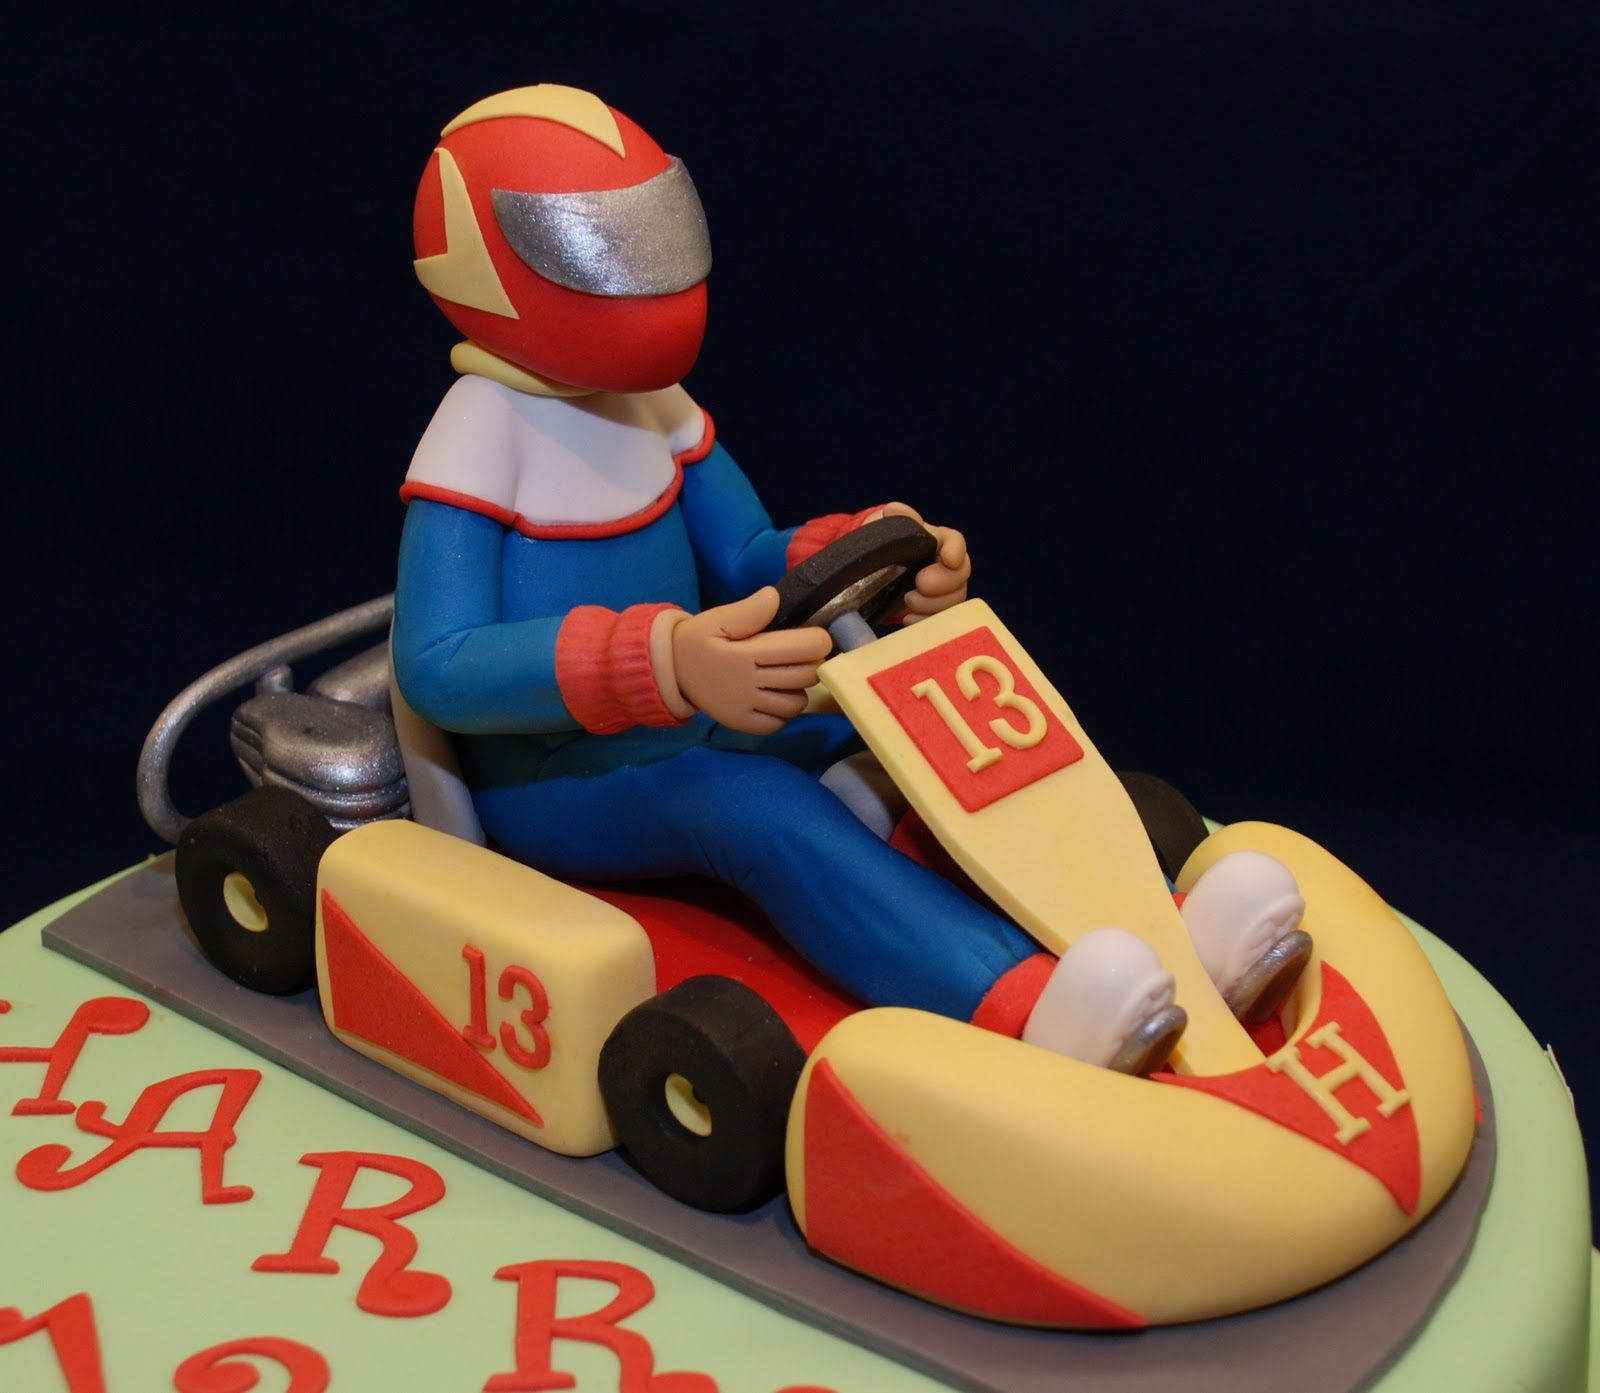 Go Kart Cake With Images Go Kart Sports Birthday Cakes Go